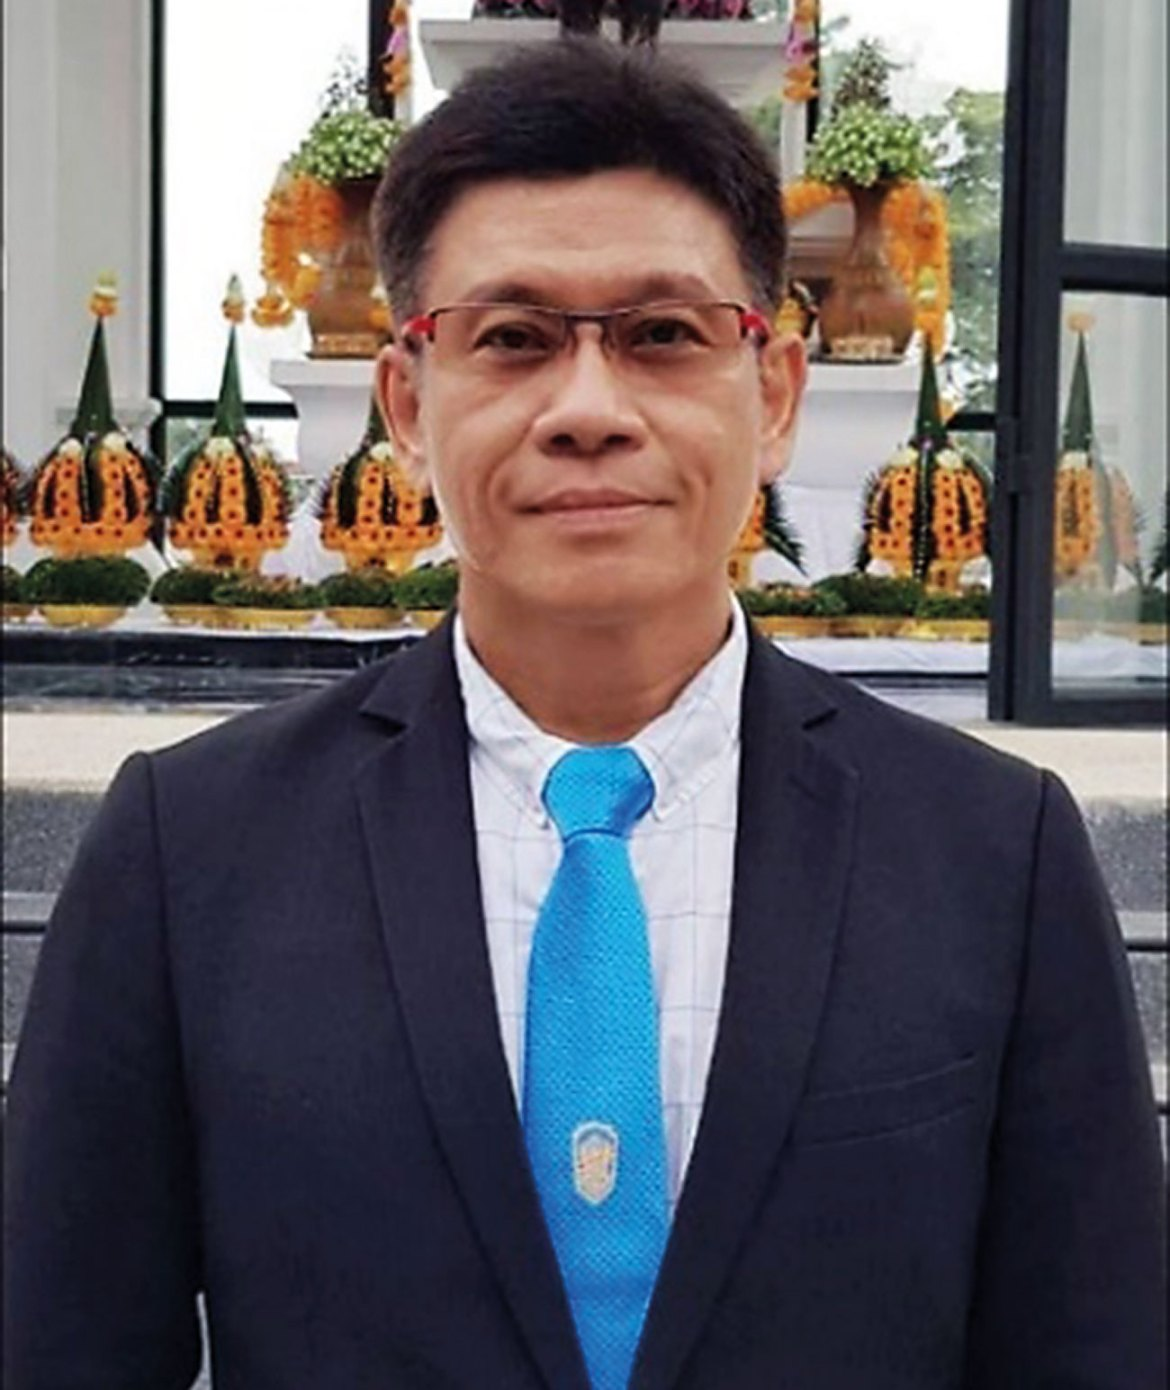 Lt Warodom Sucharitakul: One of the candidates in National Defense College Class 64.